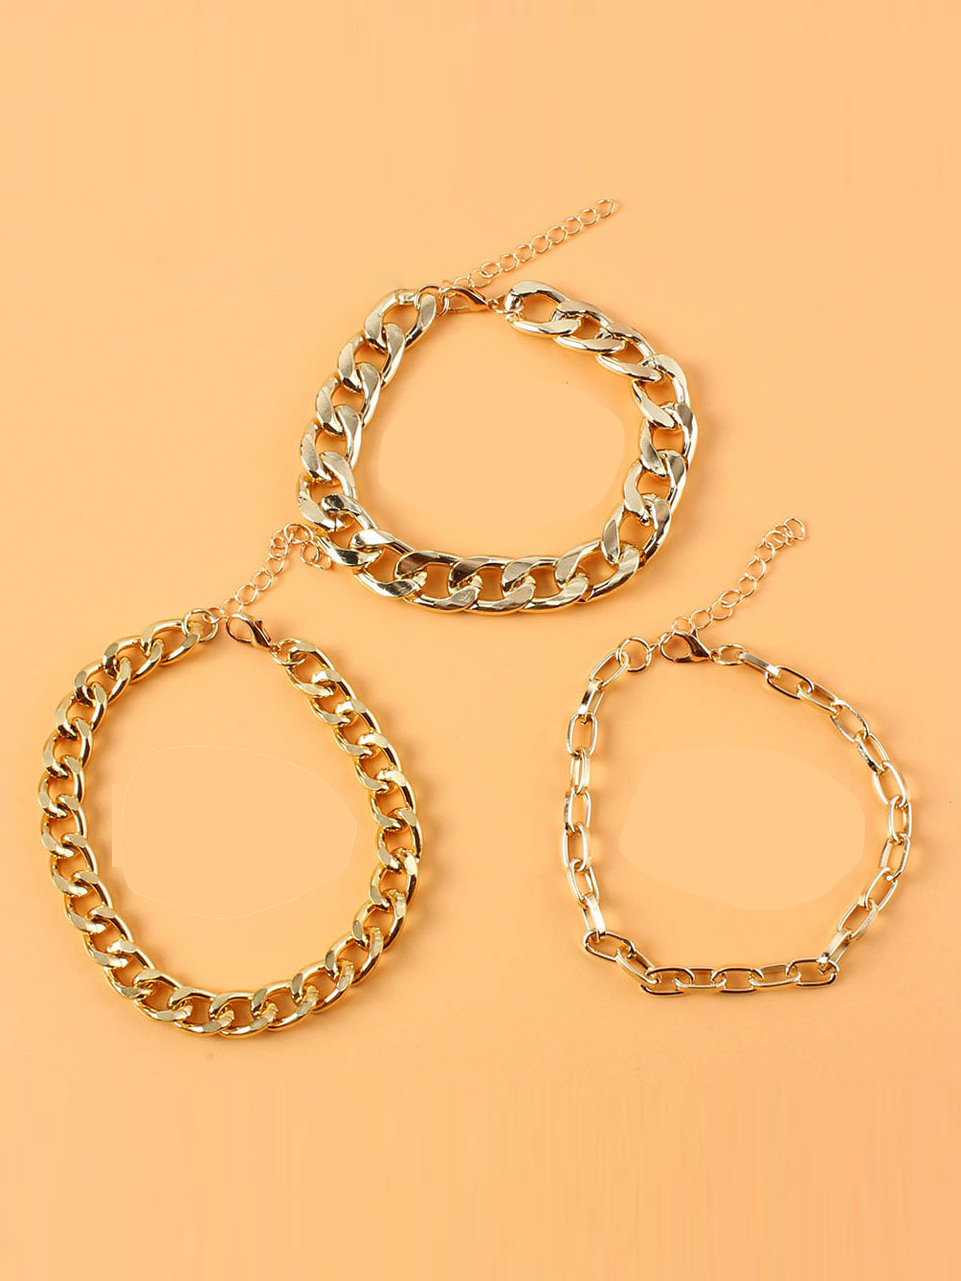 Alloy Material Create Casual Versatile Anklet